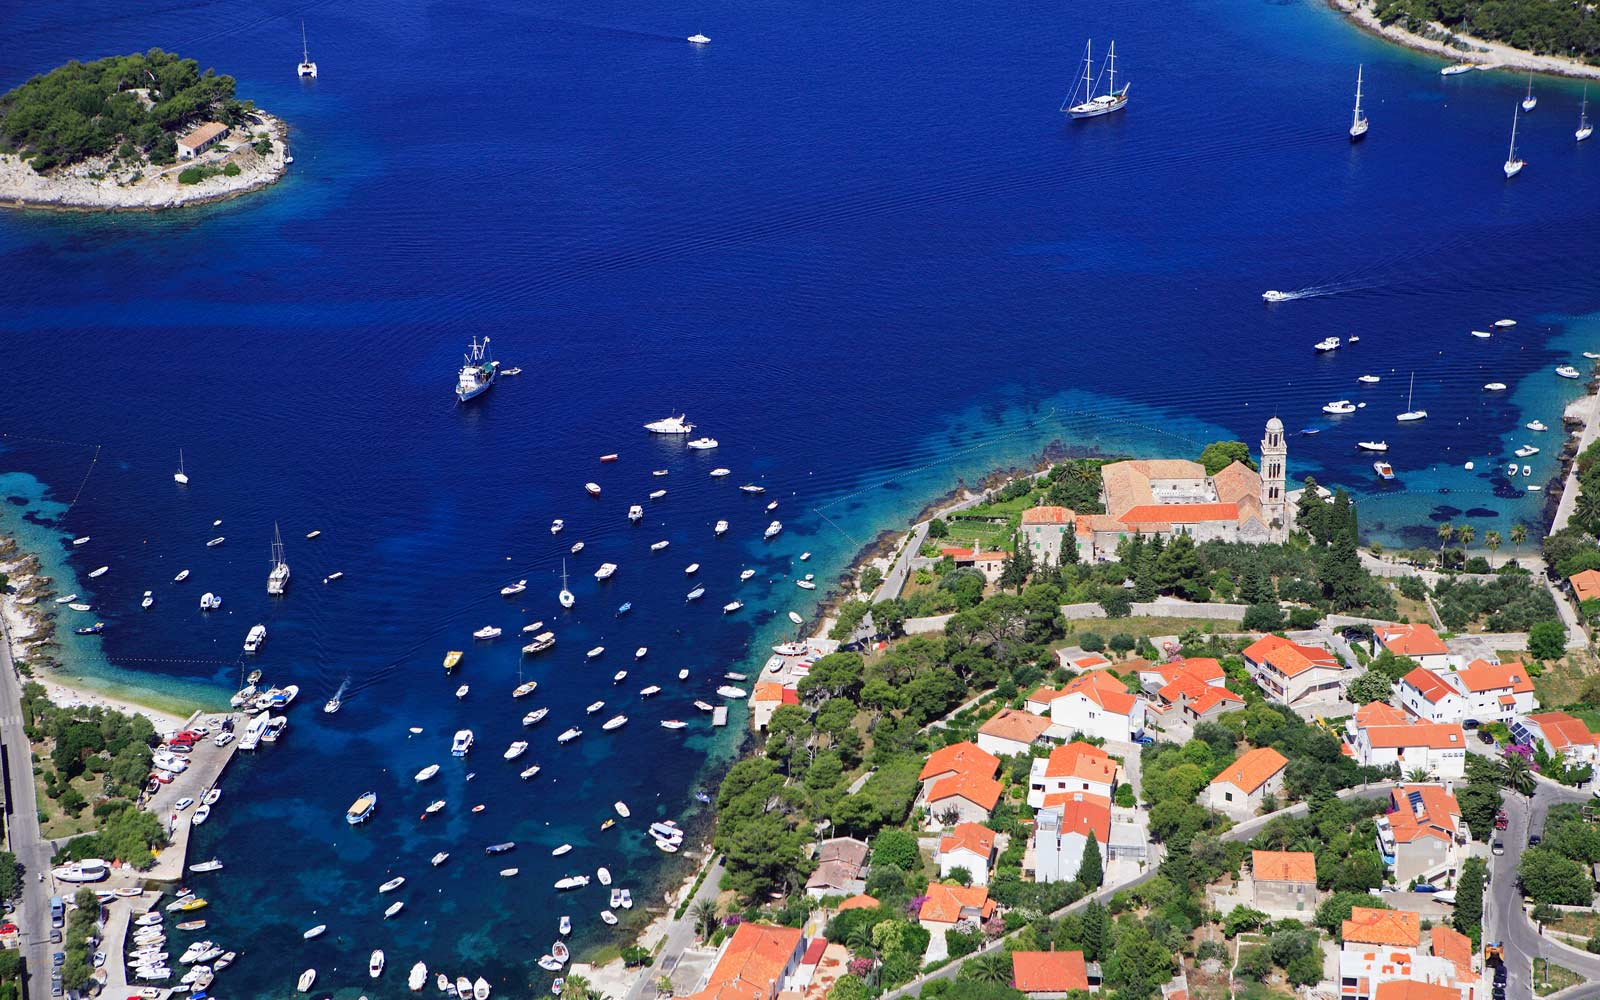 9. Hvar and the Dalmatian Islands, Croatia